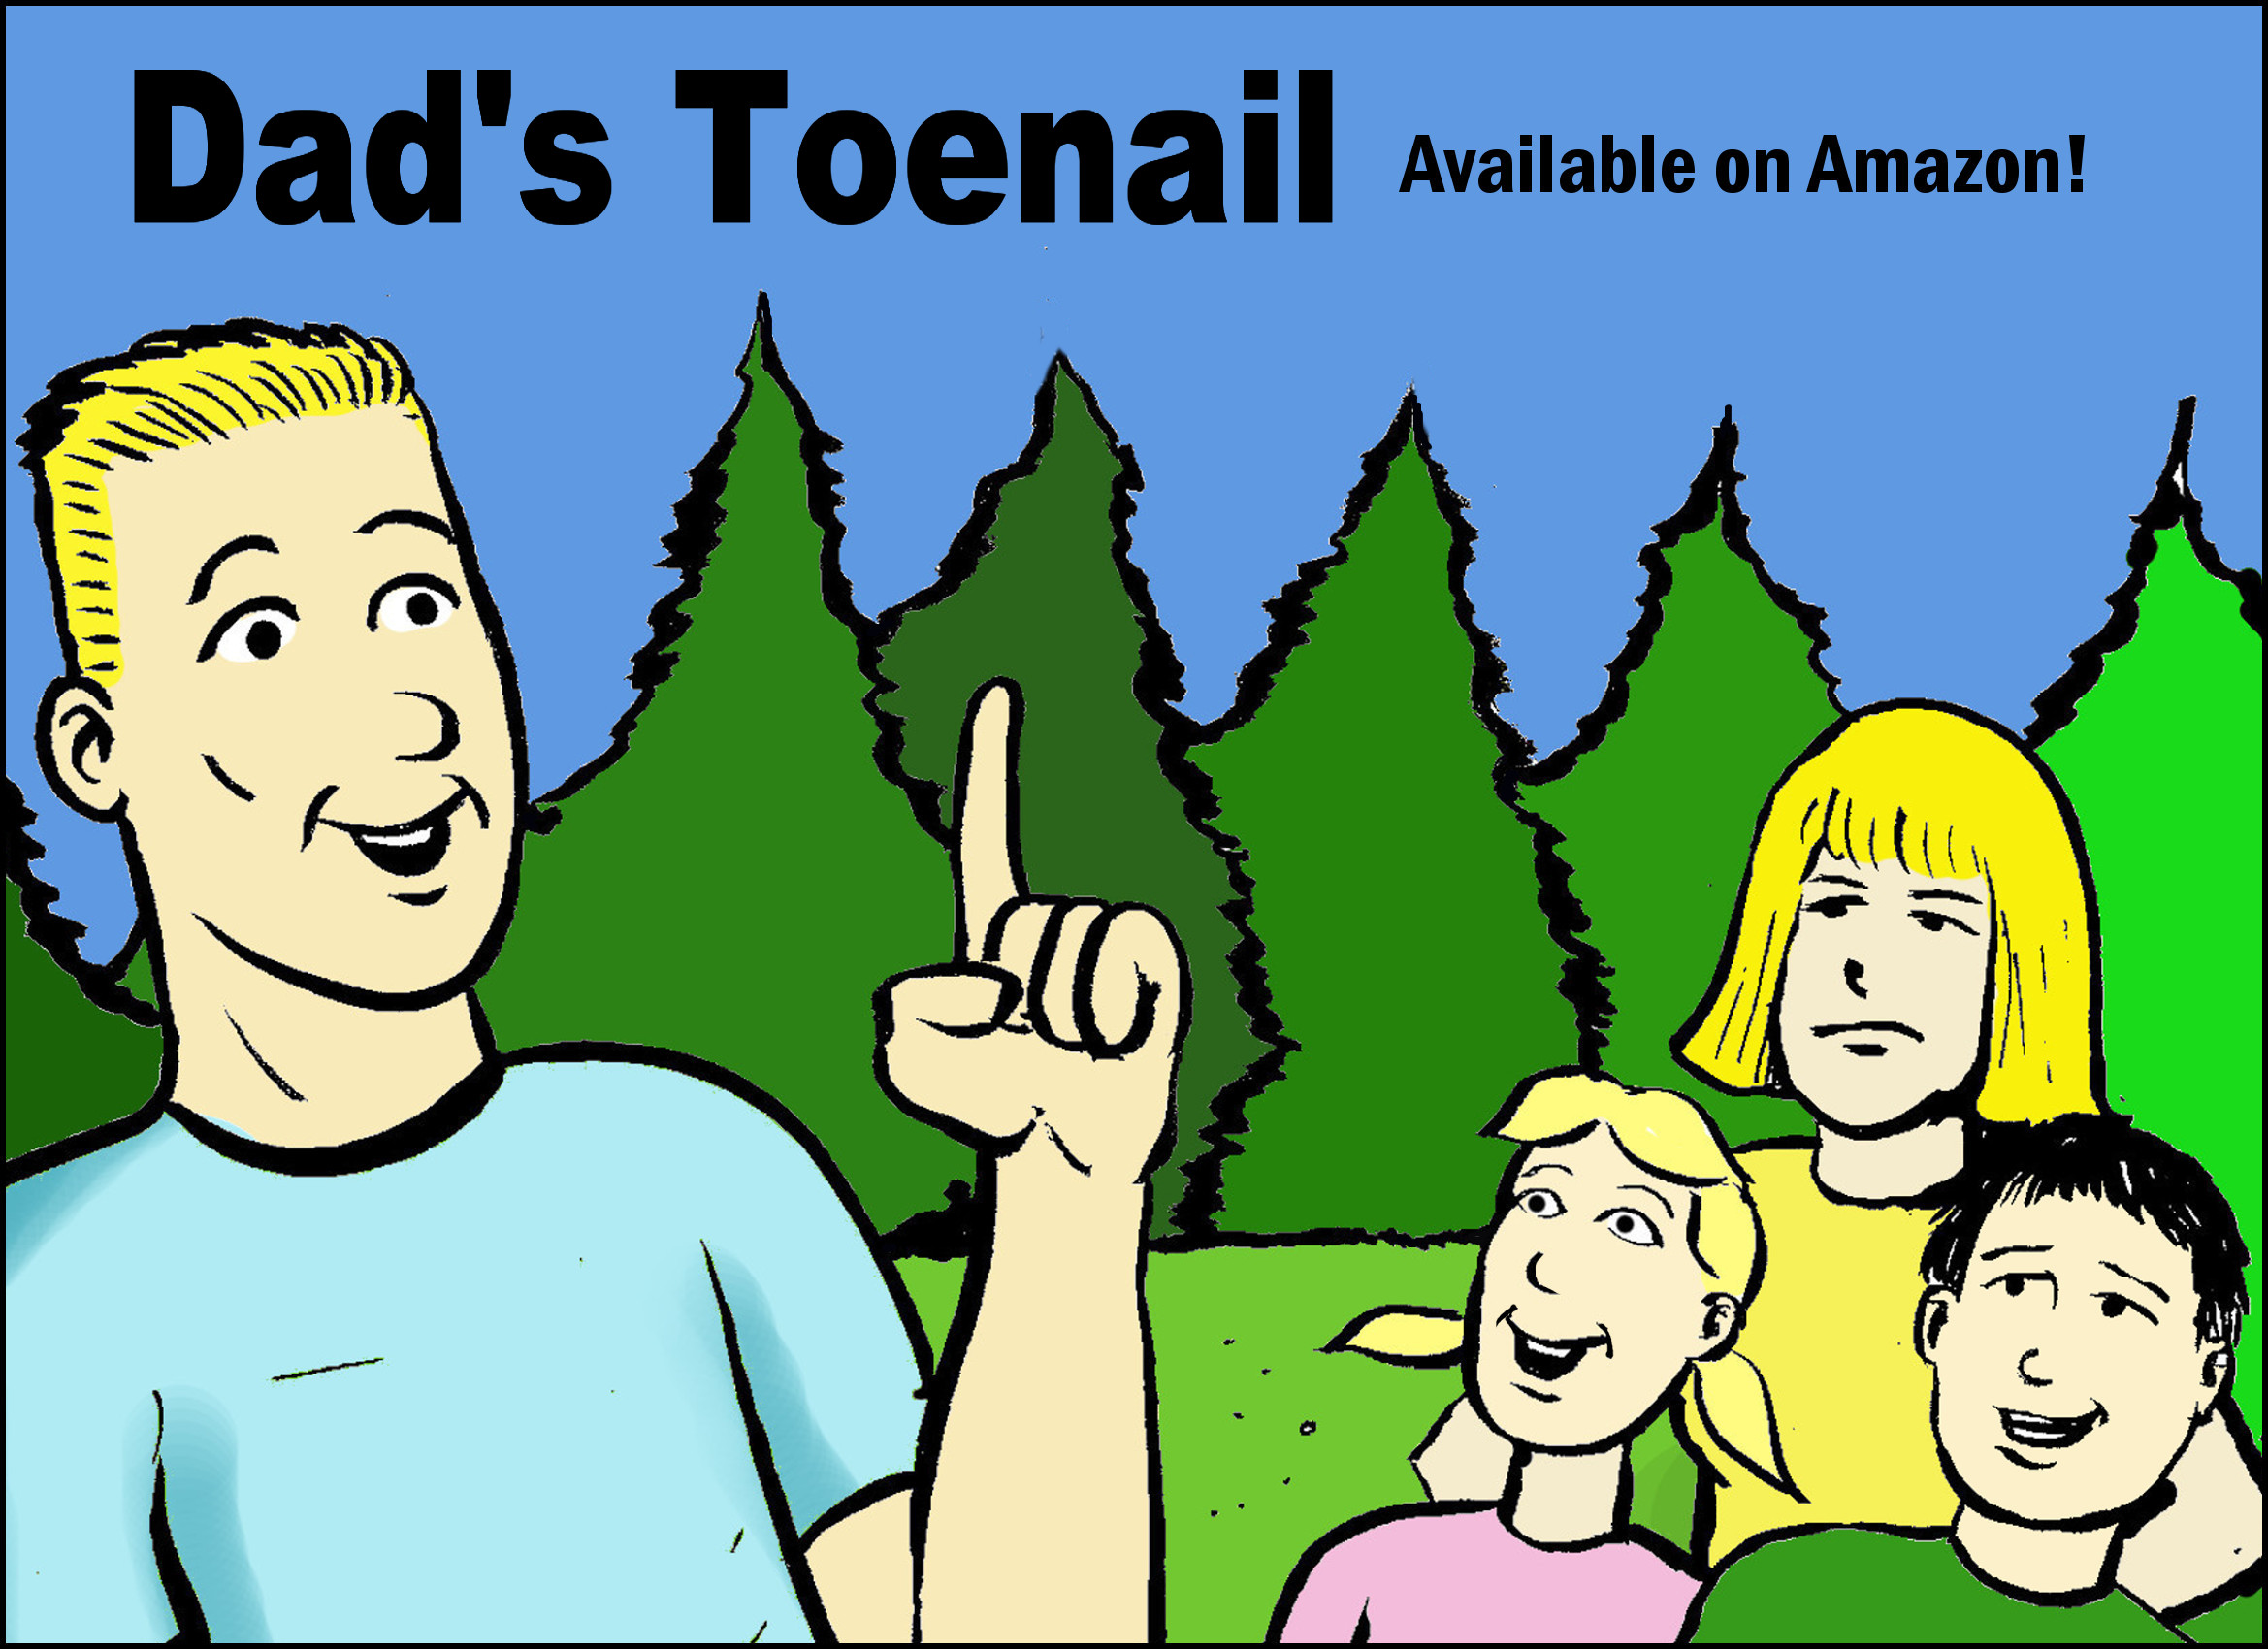 toenail fairy tales tells the sill sequel to the Dad's toenail story, and involves a respin of some of the old classic stories of the past, like jack and the beanstalk, etc. It's goofy but intended for all age readers